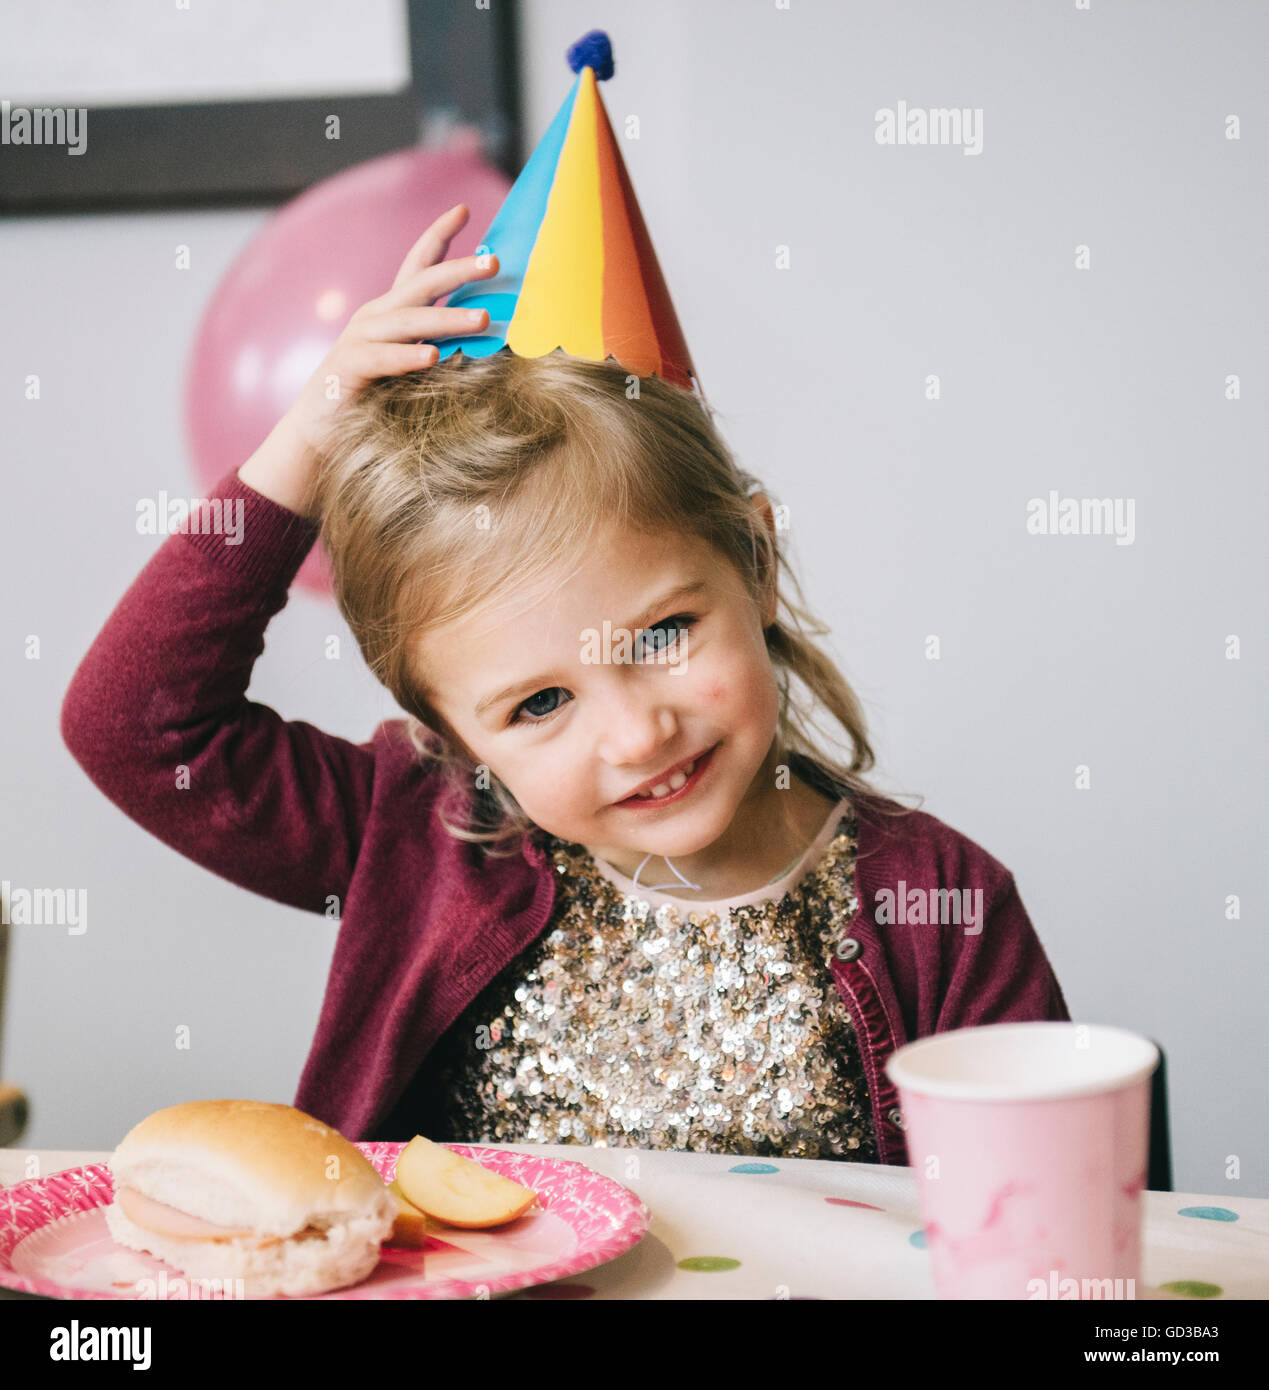 A young girl in a party hat at a birthday party. - Stock Image